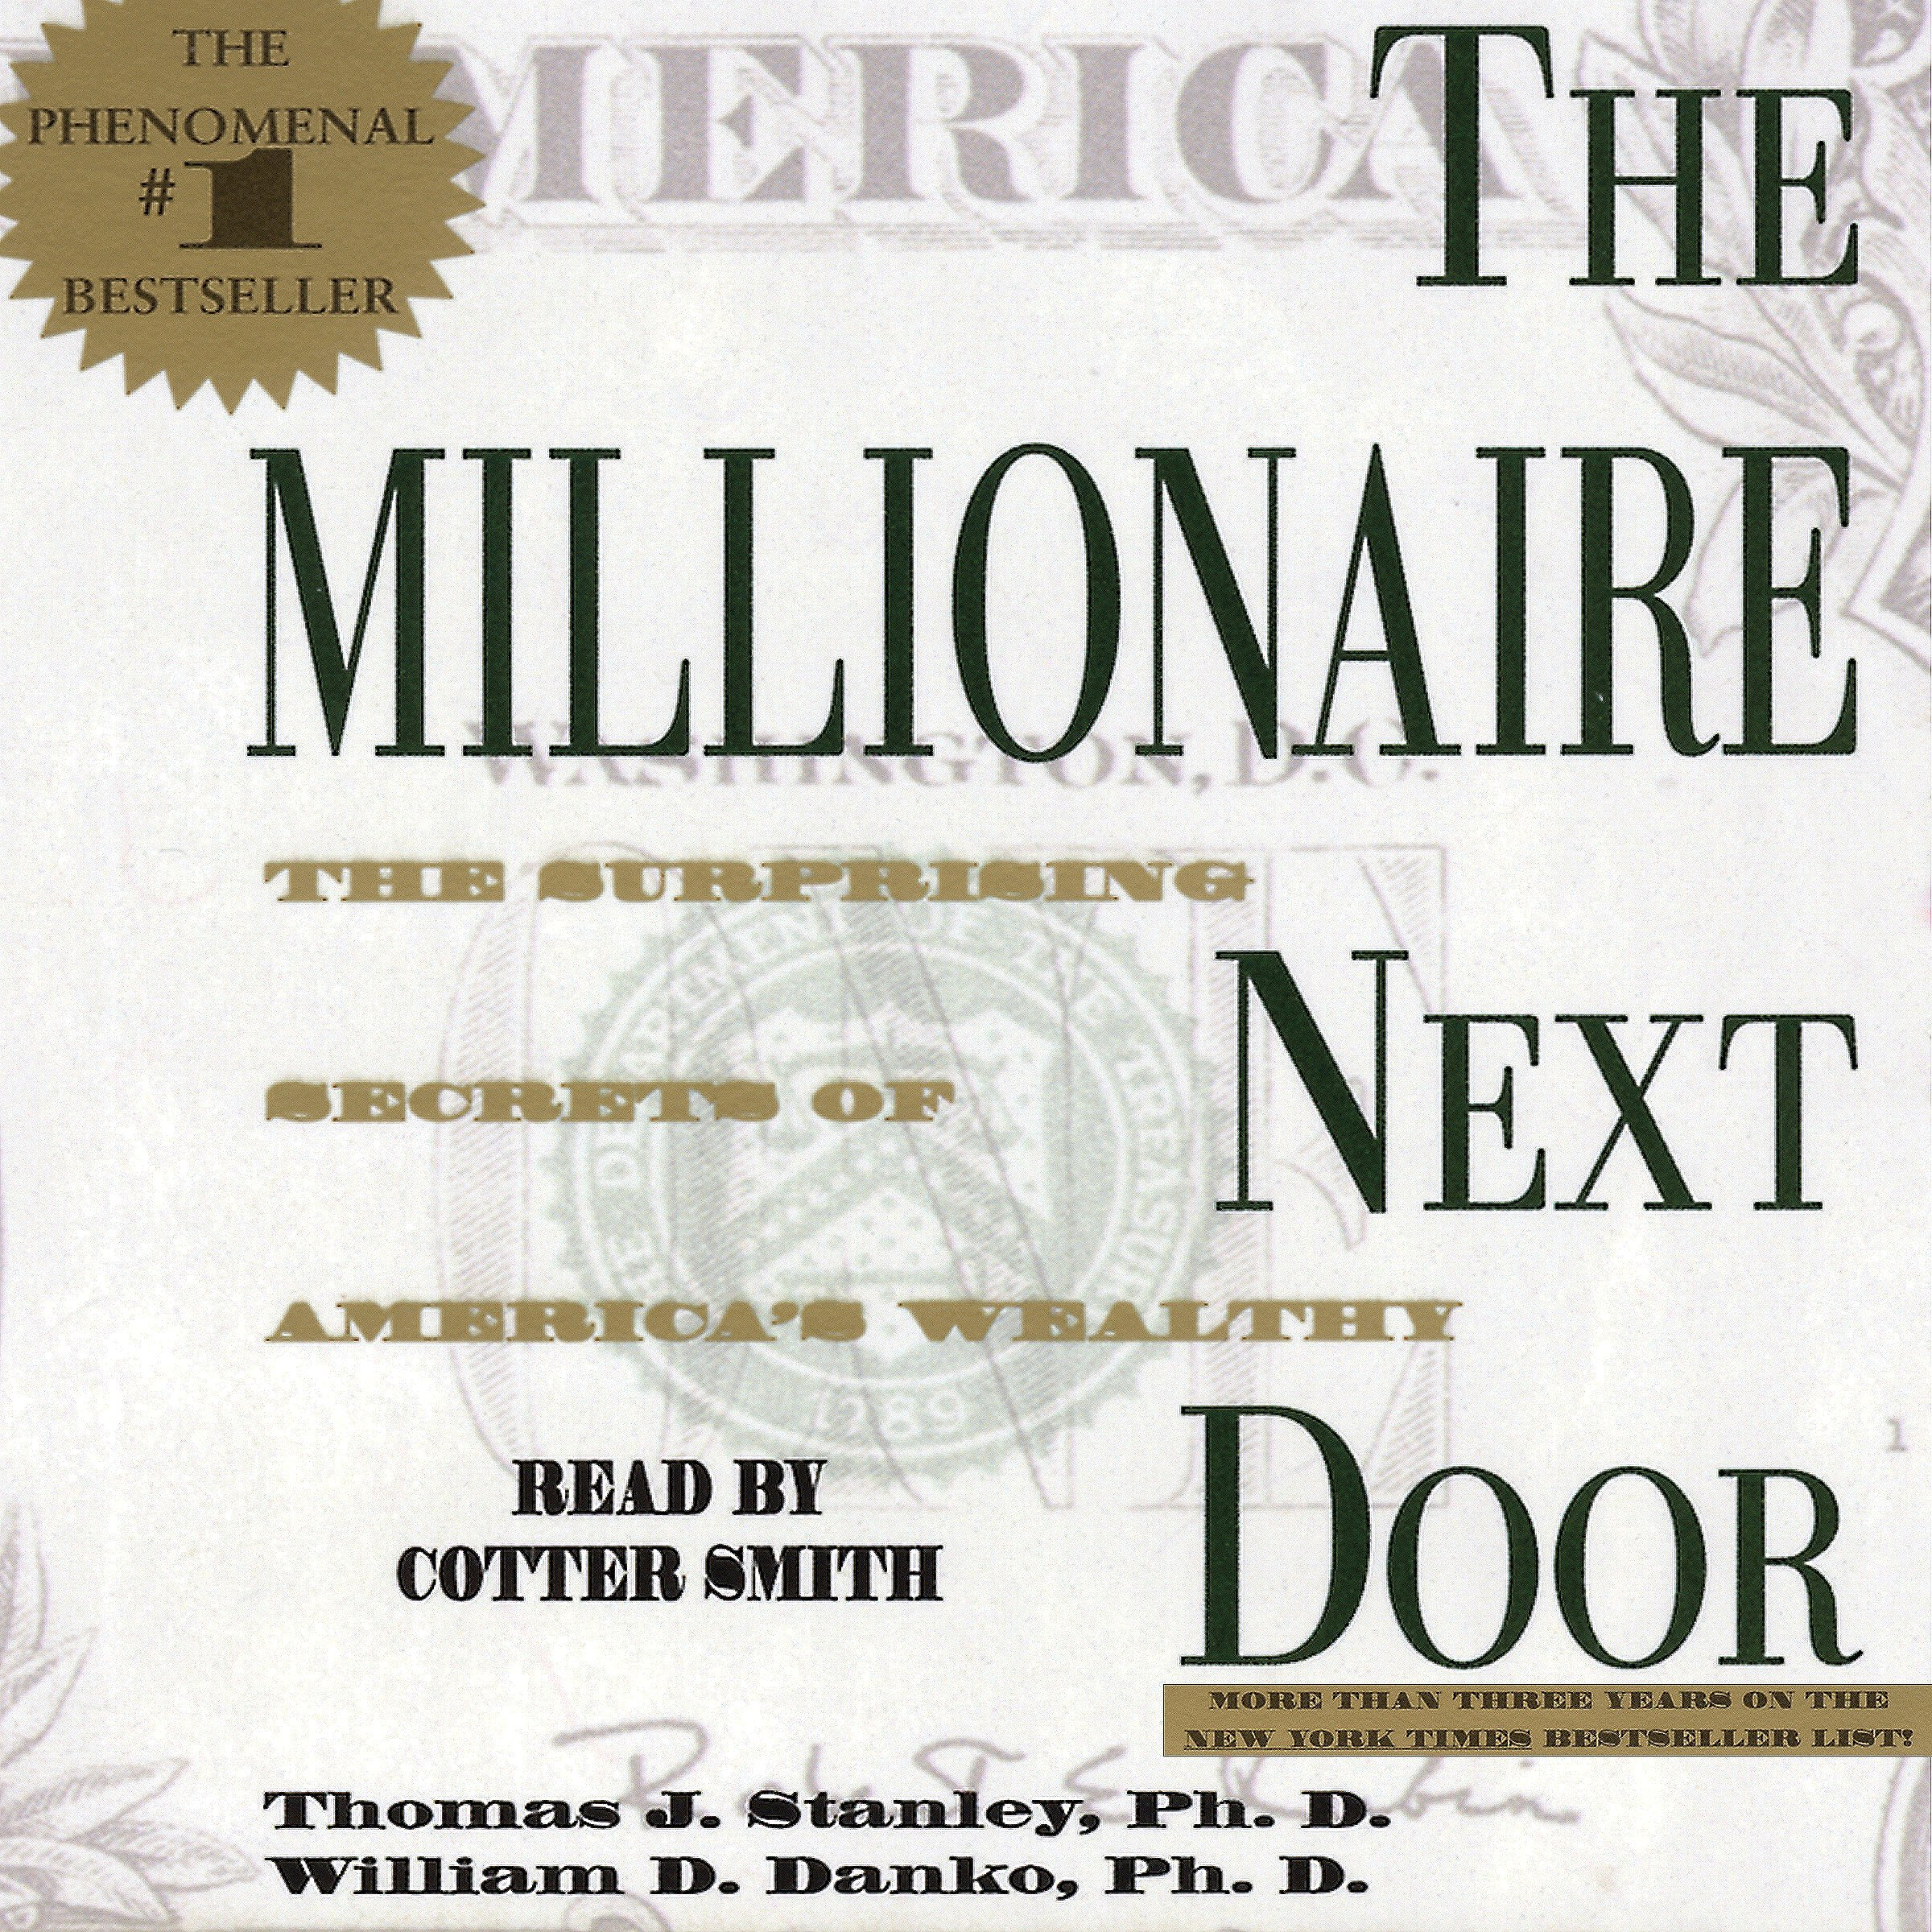 The Millionaire Next Door: The Surprising Secrets of America's Rich